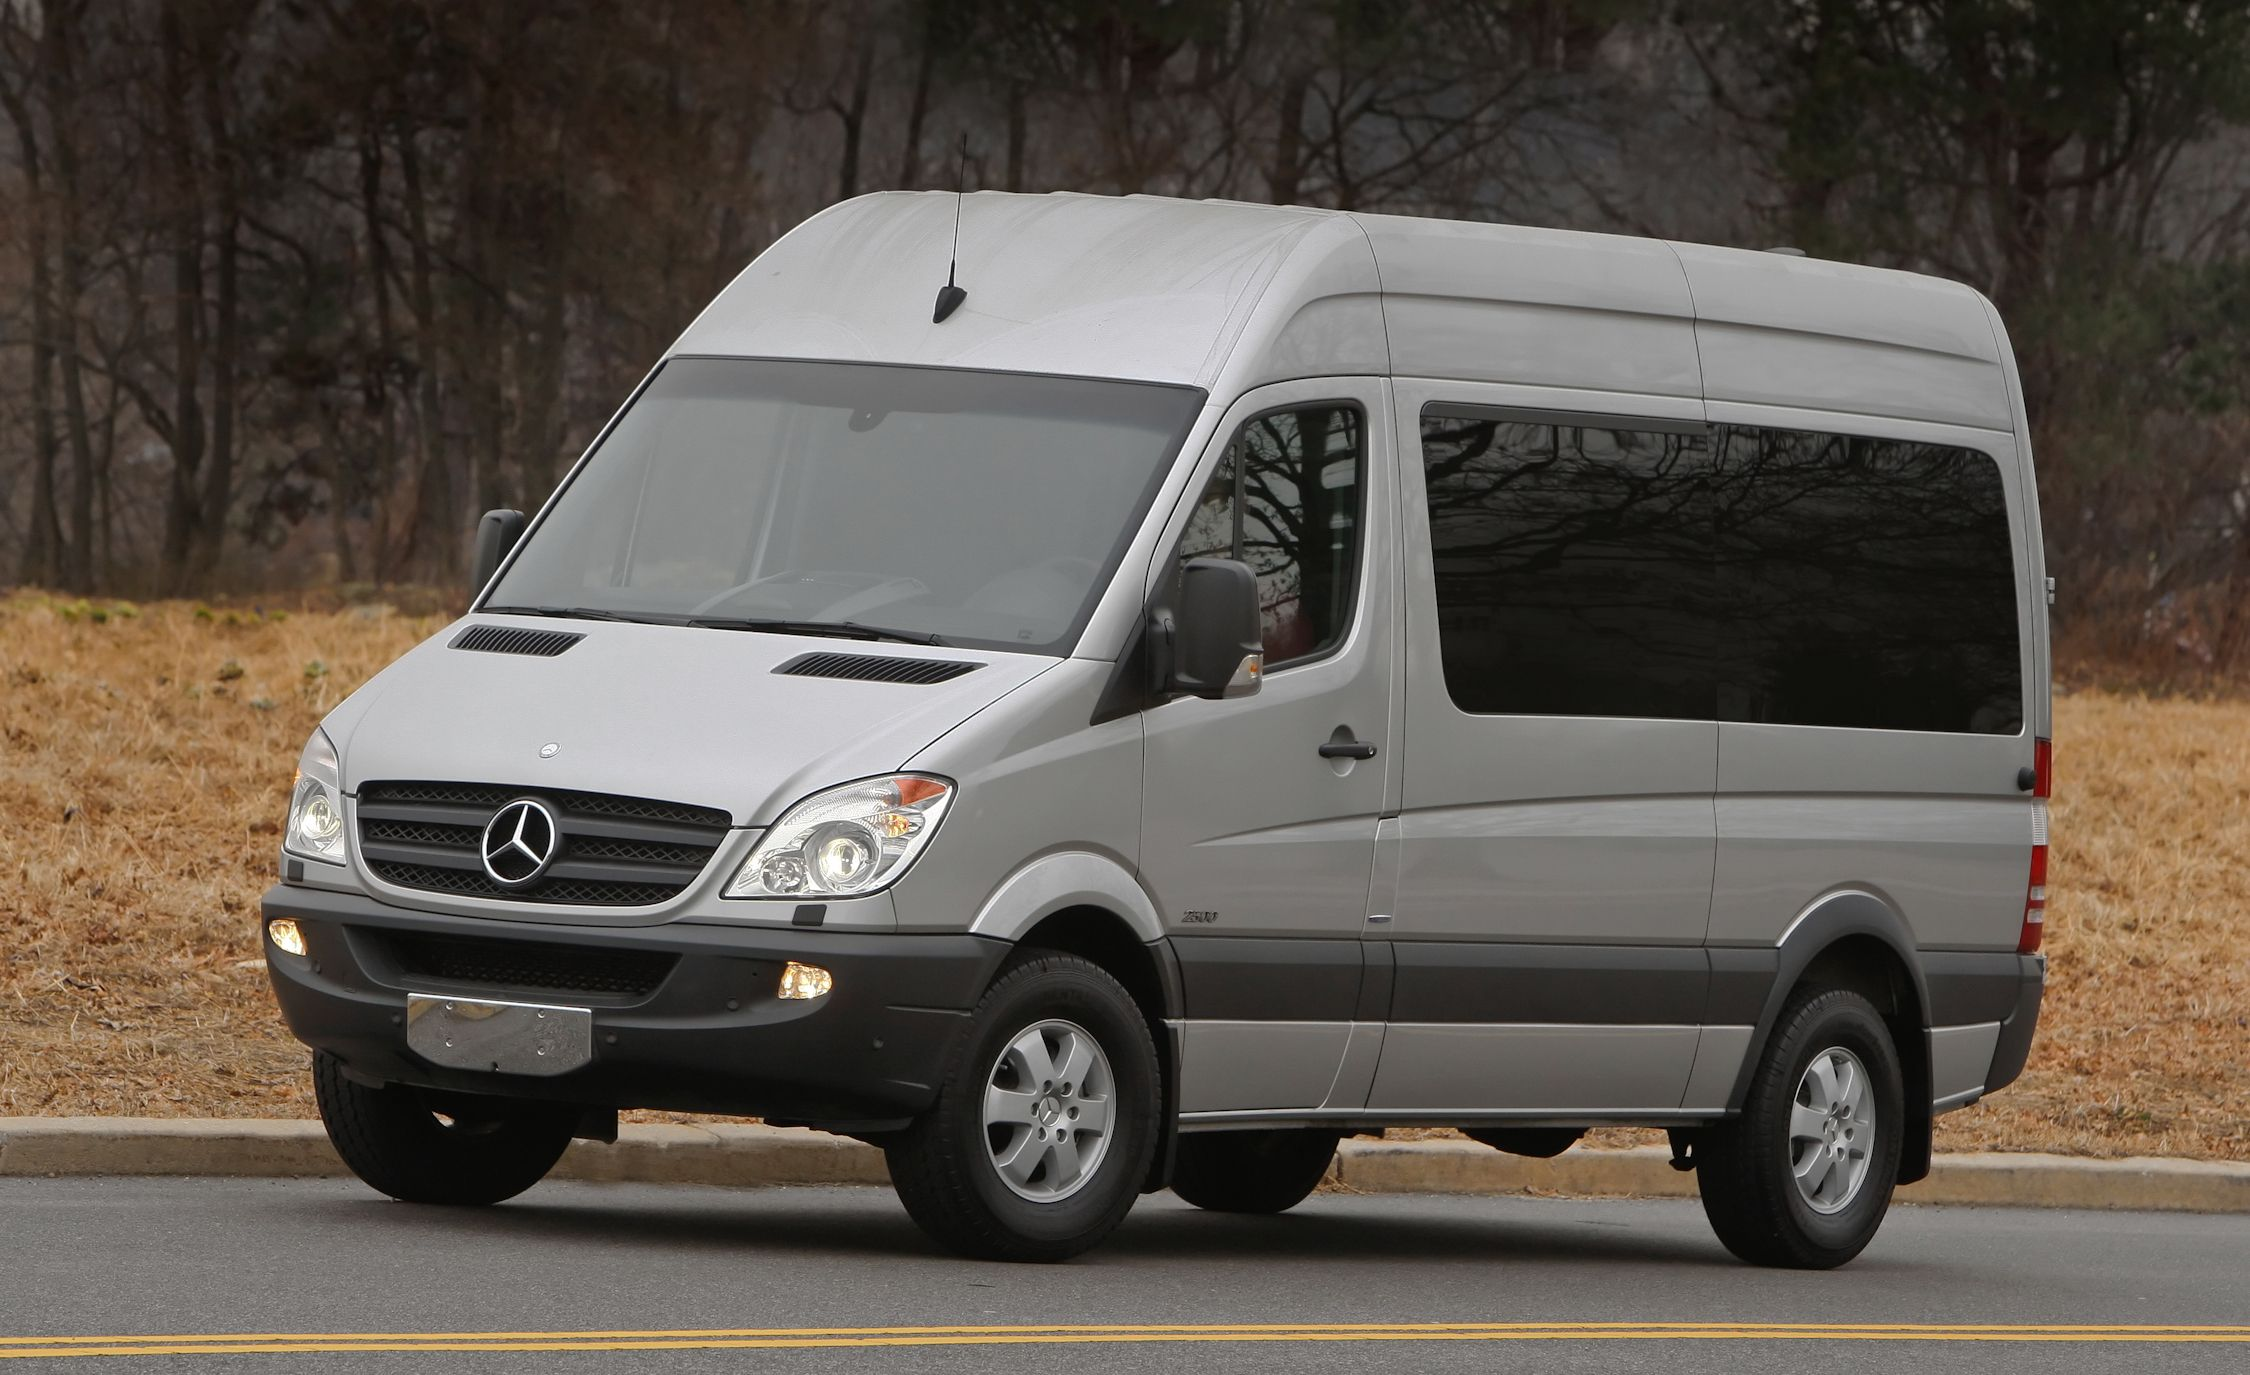 2010 mercedes-benz sprinter test – review – car and driver